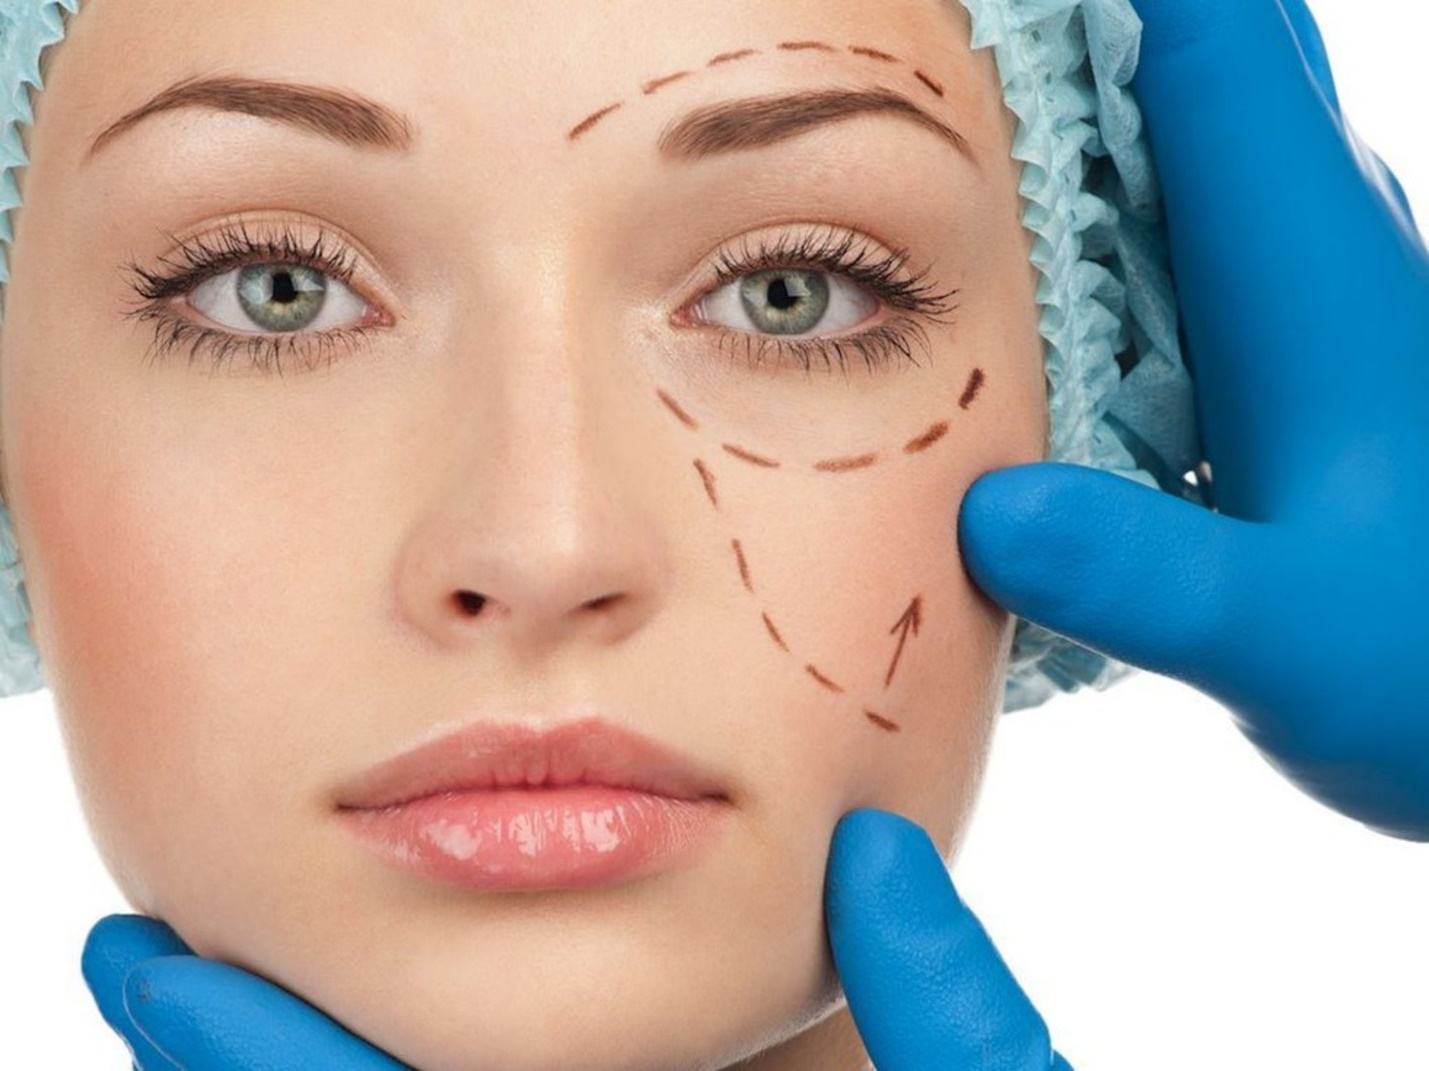 Design the surgical areas by detailed consultation